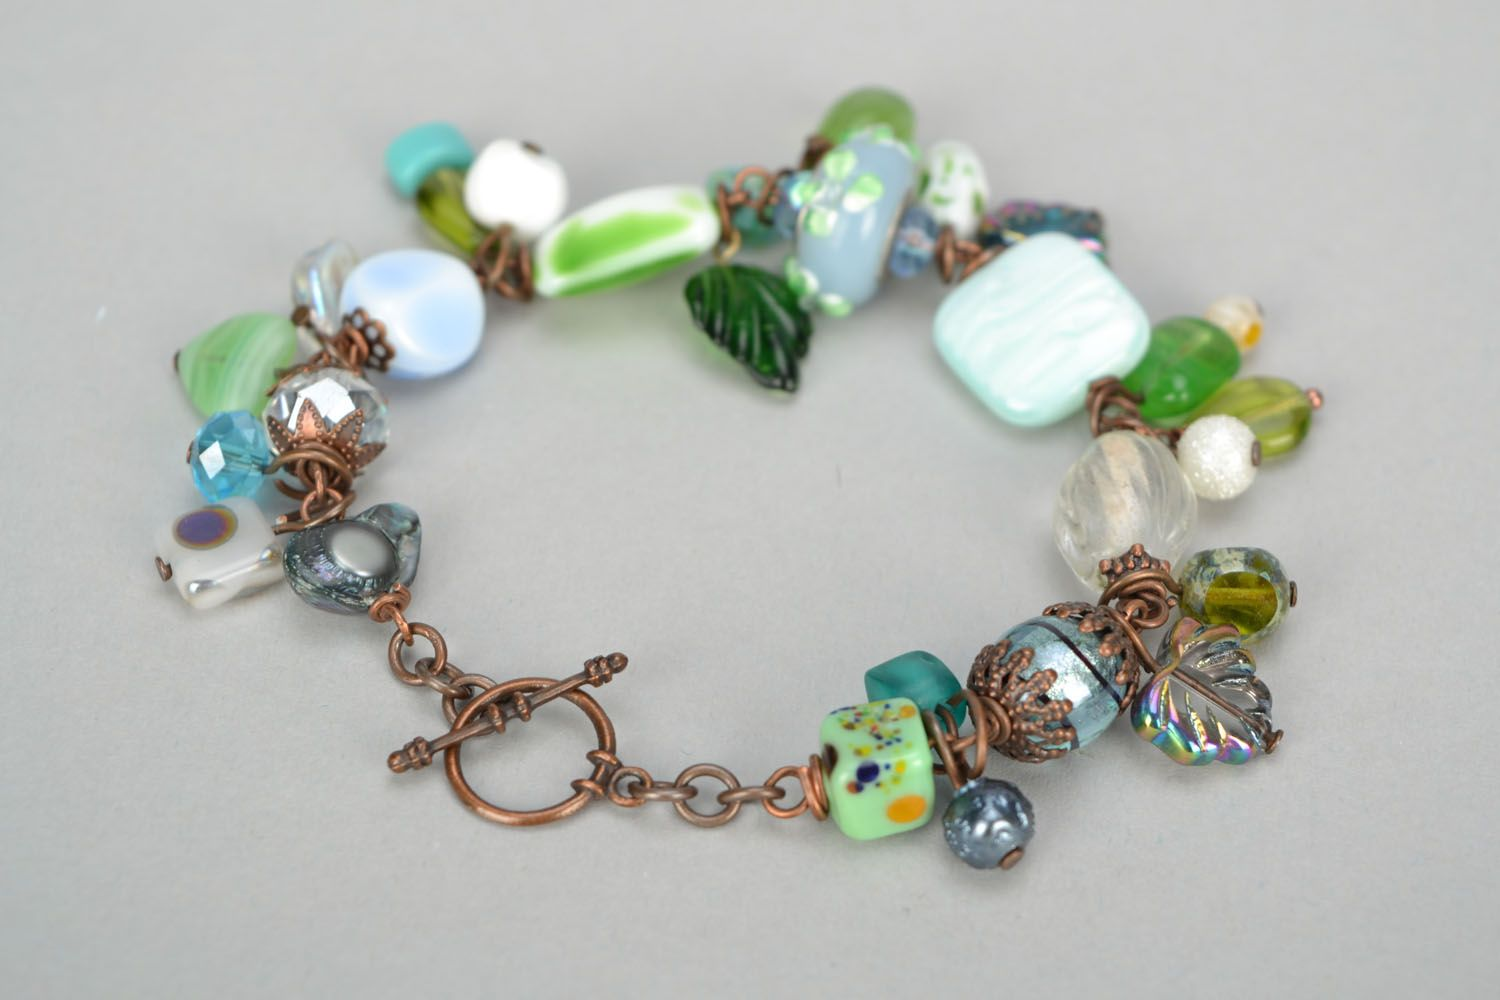 Bracelet with charms photo 6